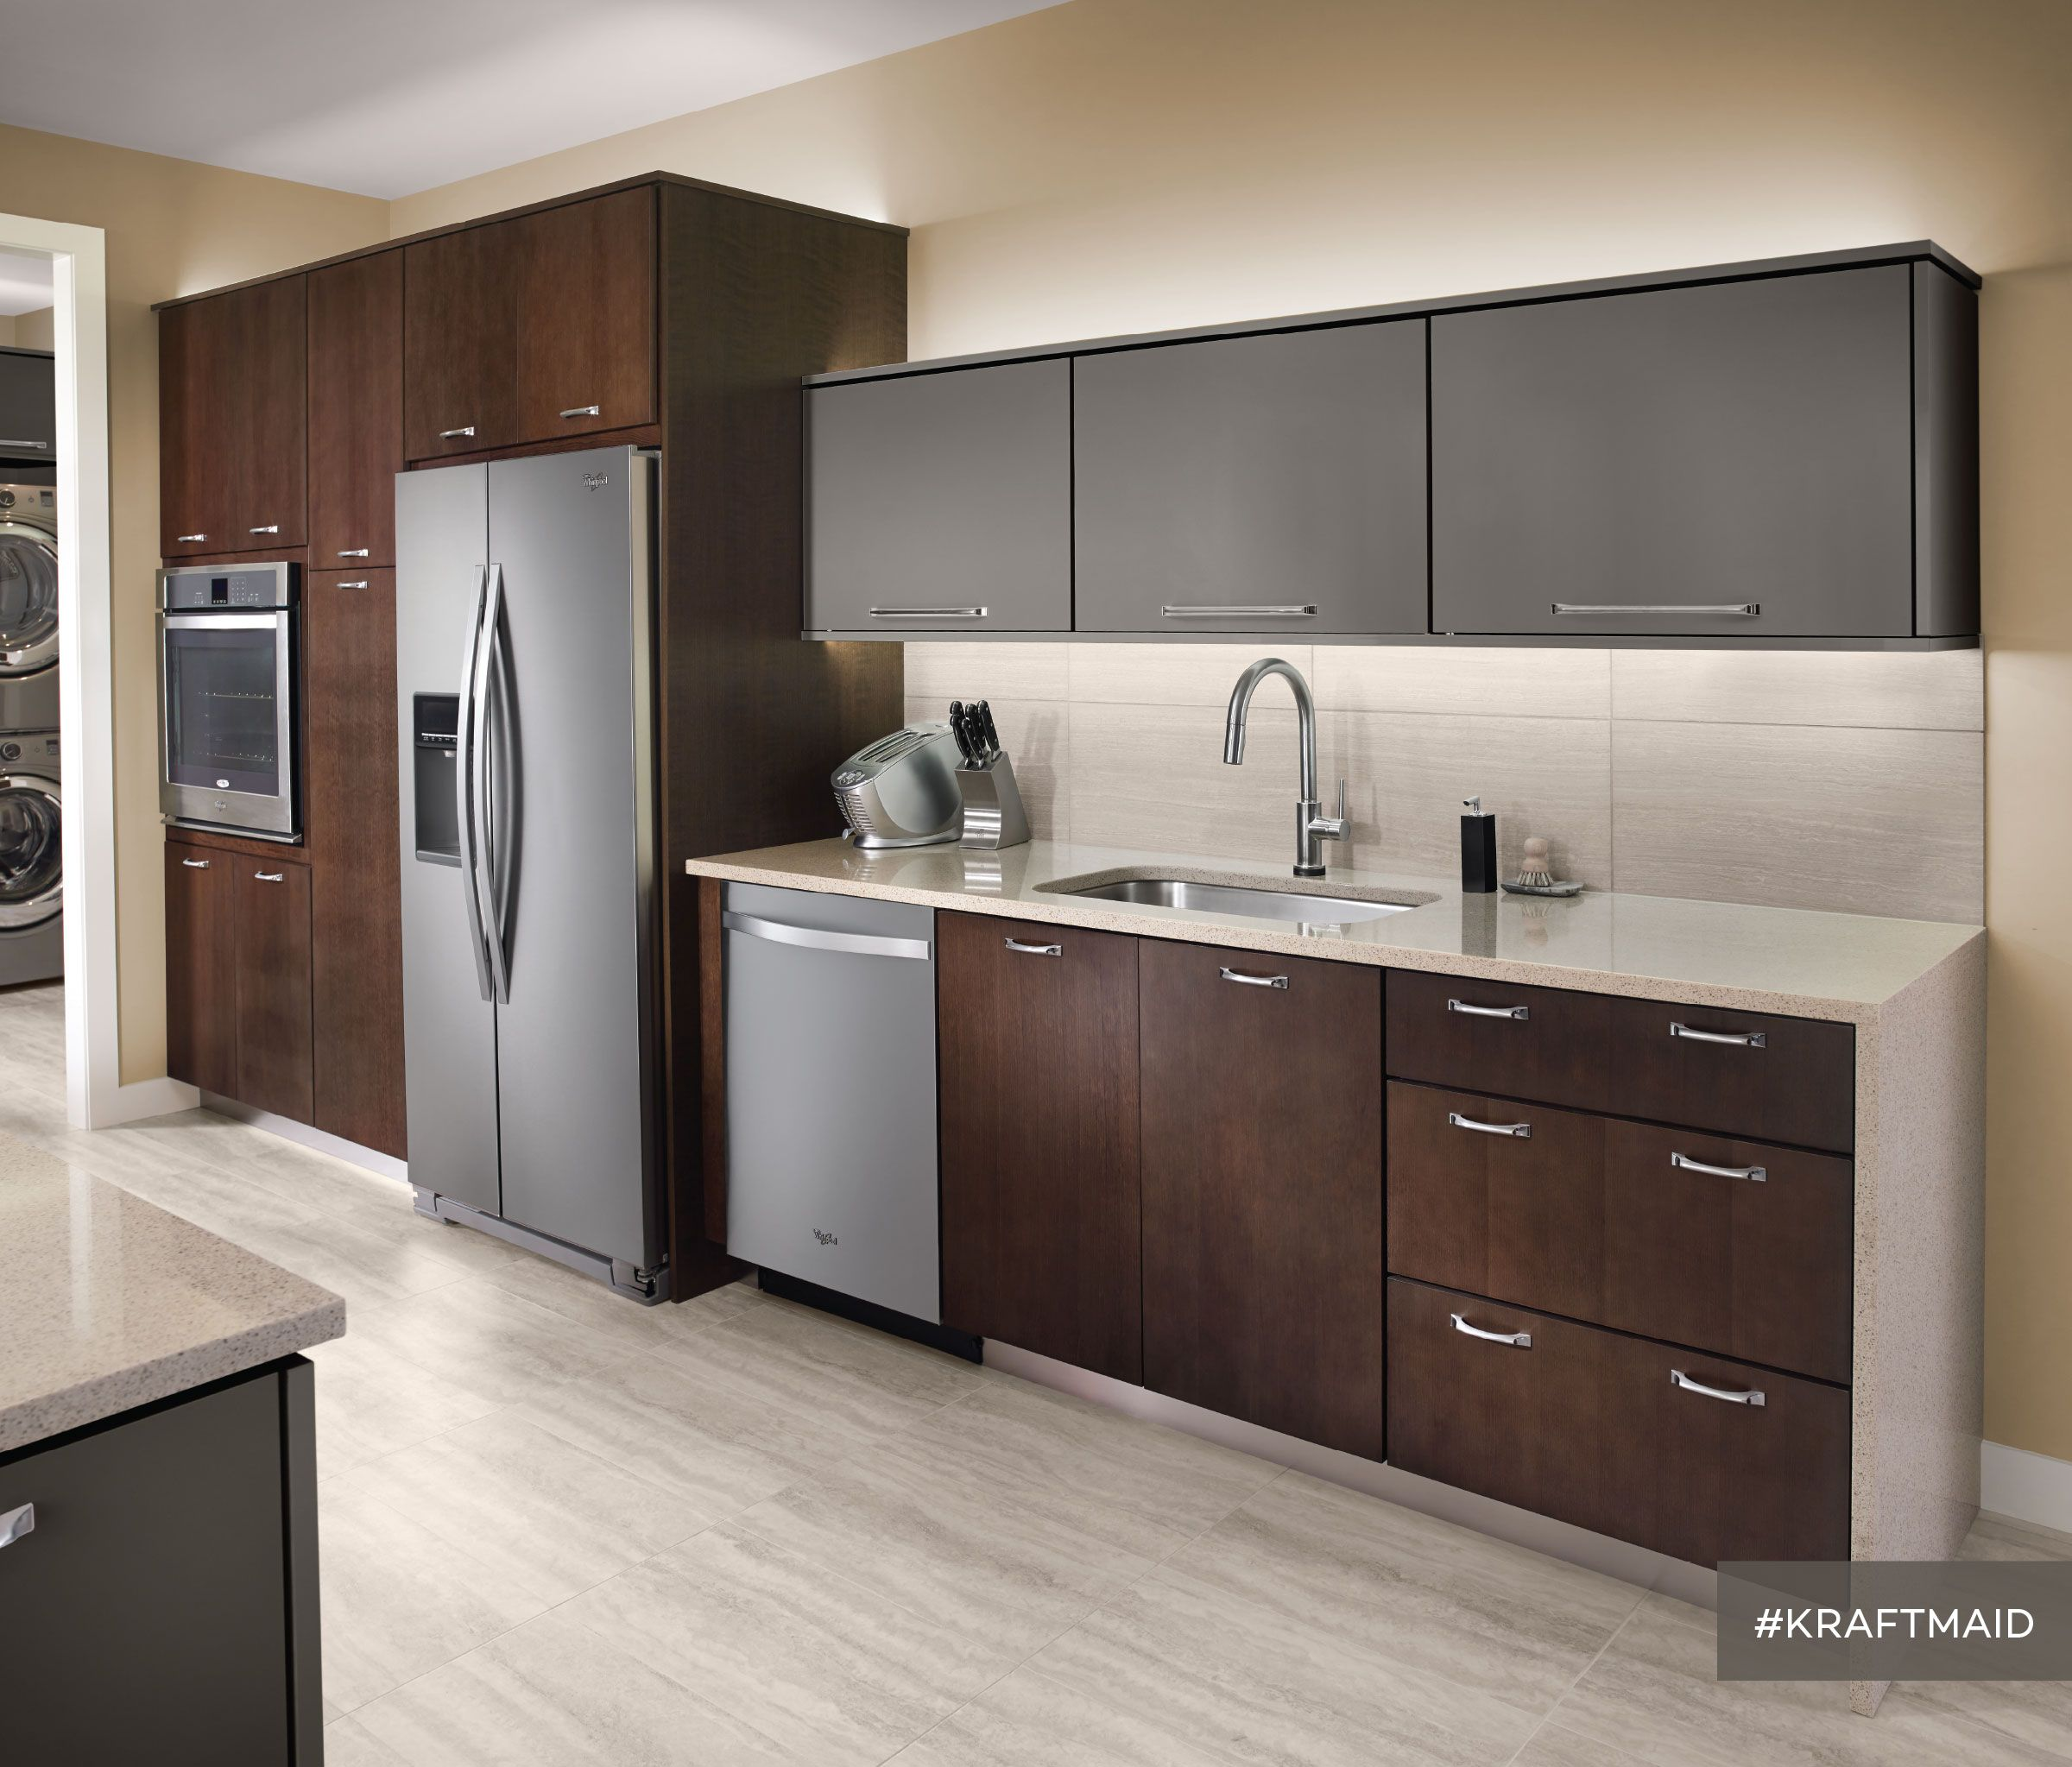 Cherry Kitchen Cabinet Doors: This Kitchen Features Quartersawn Cherry Cabinet Doors